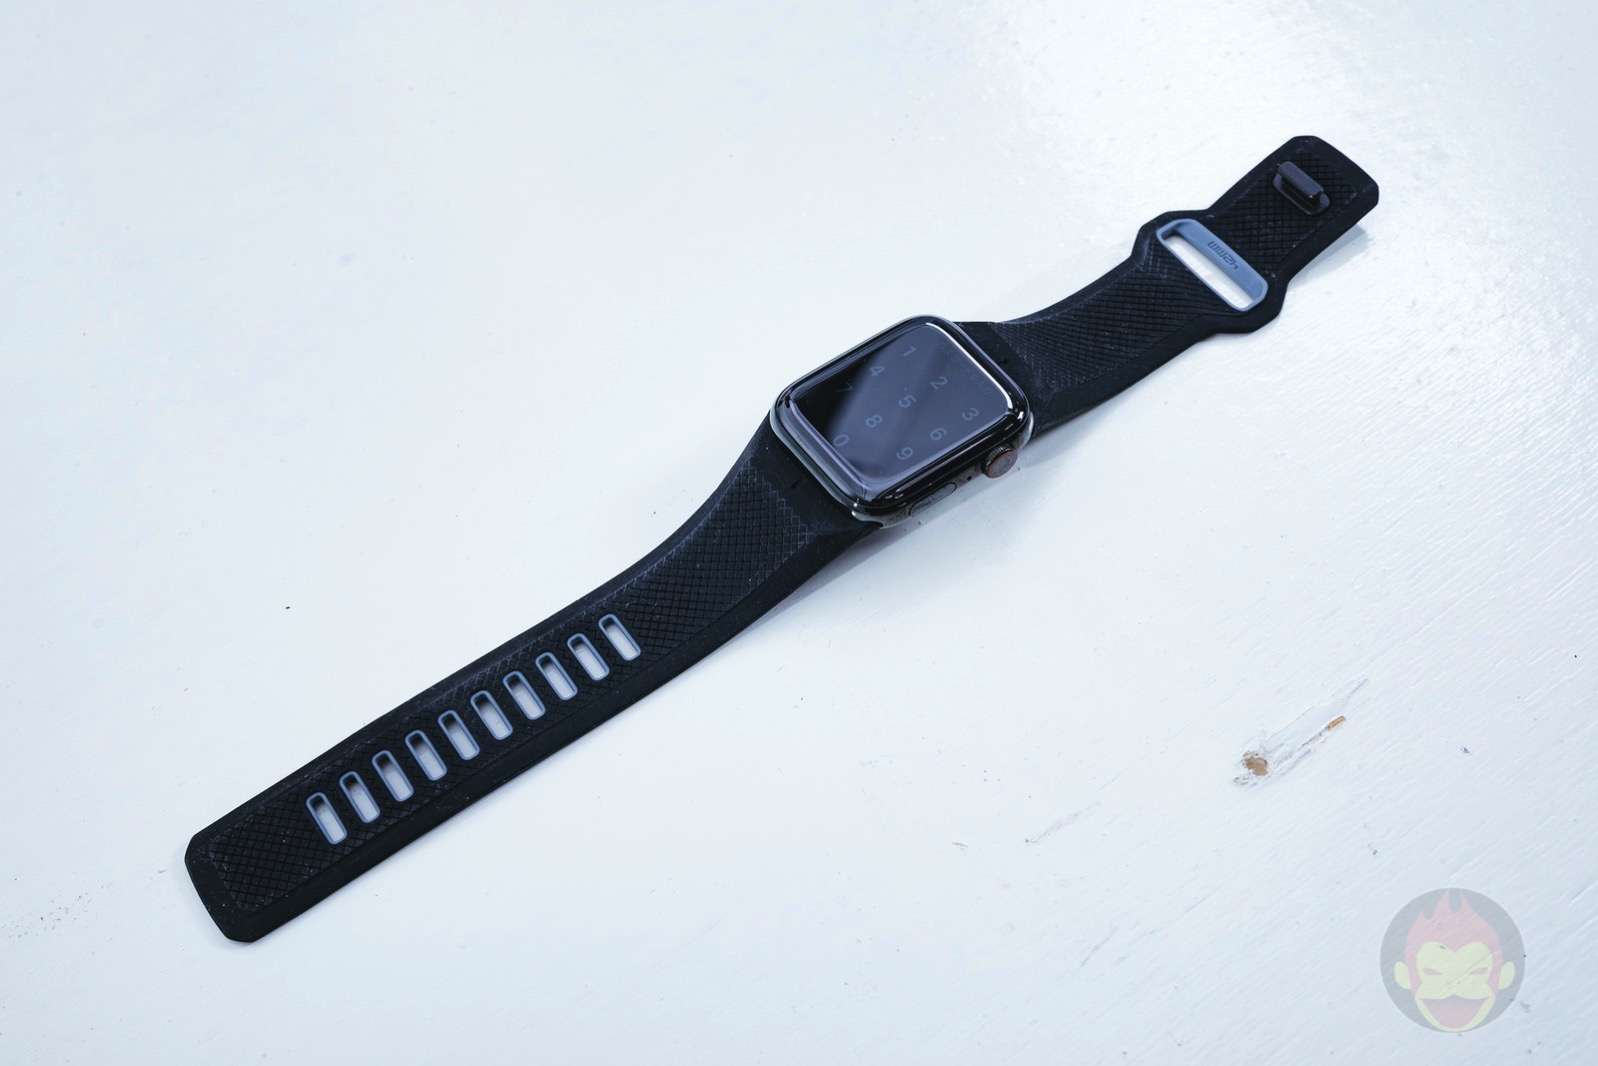 NOMAD Sport Strap Review 07